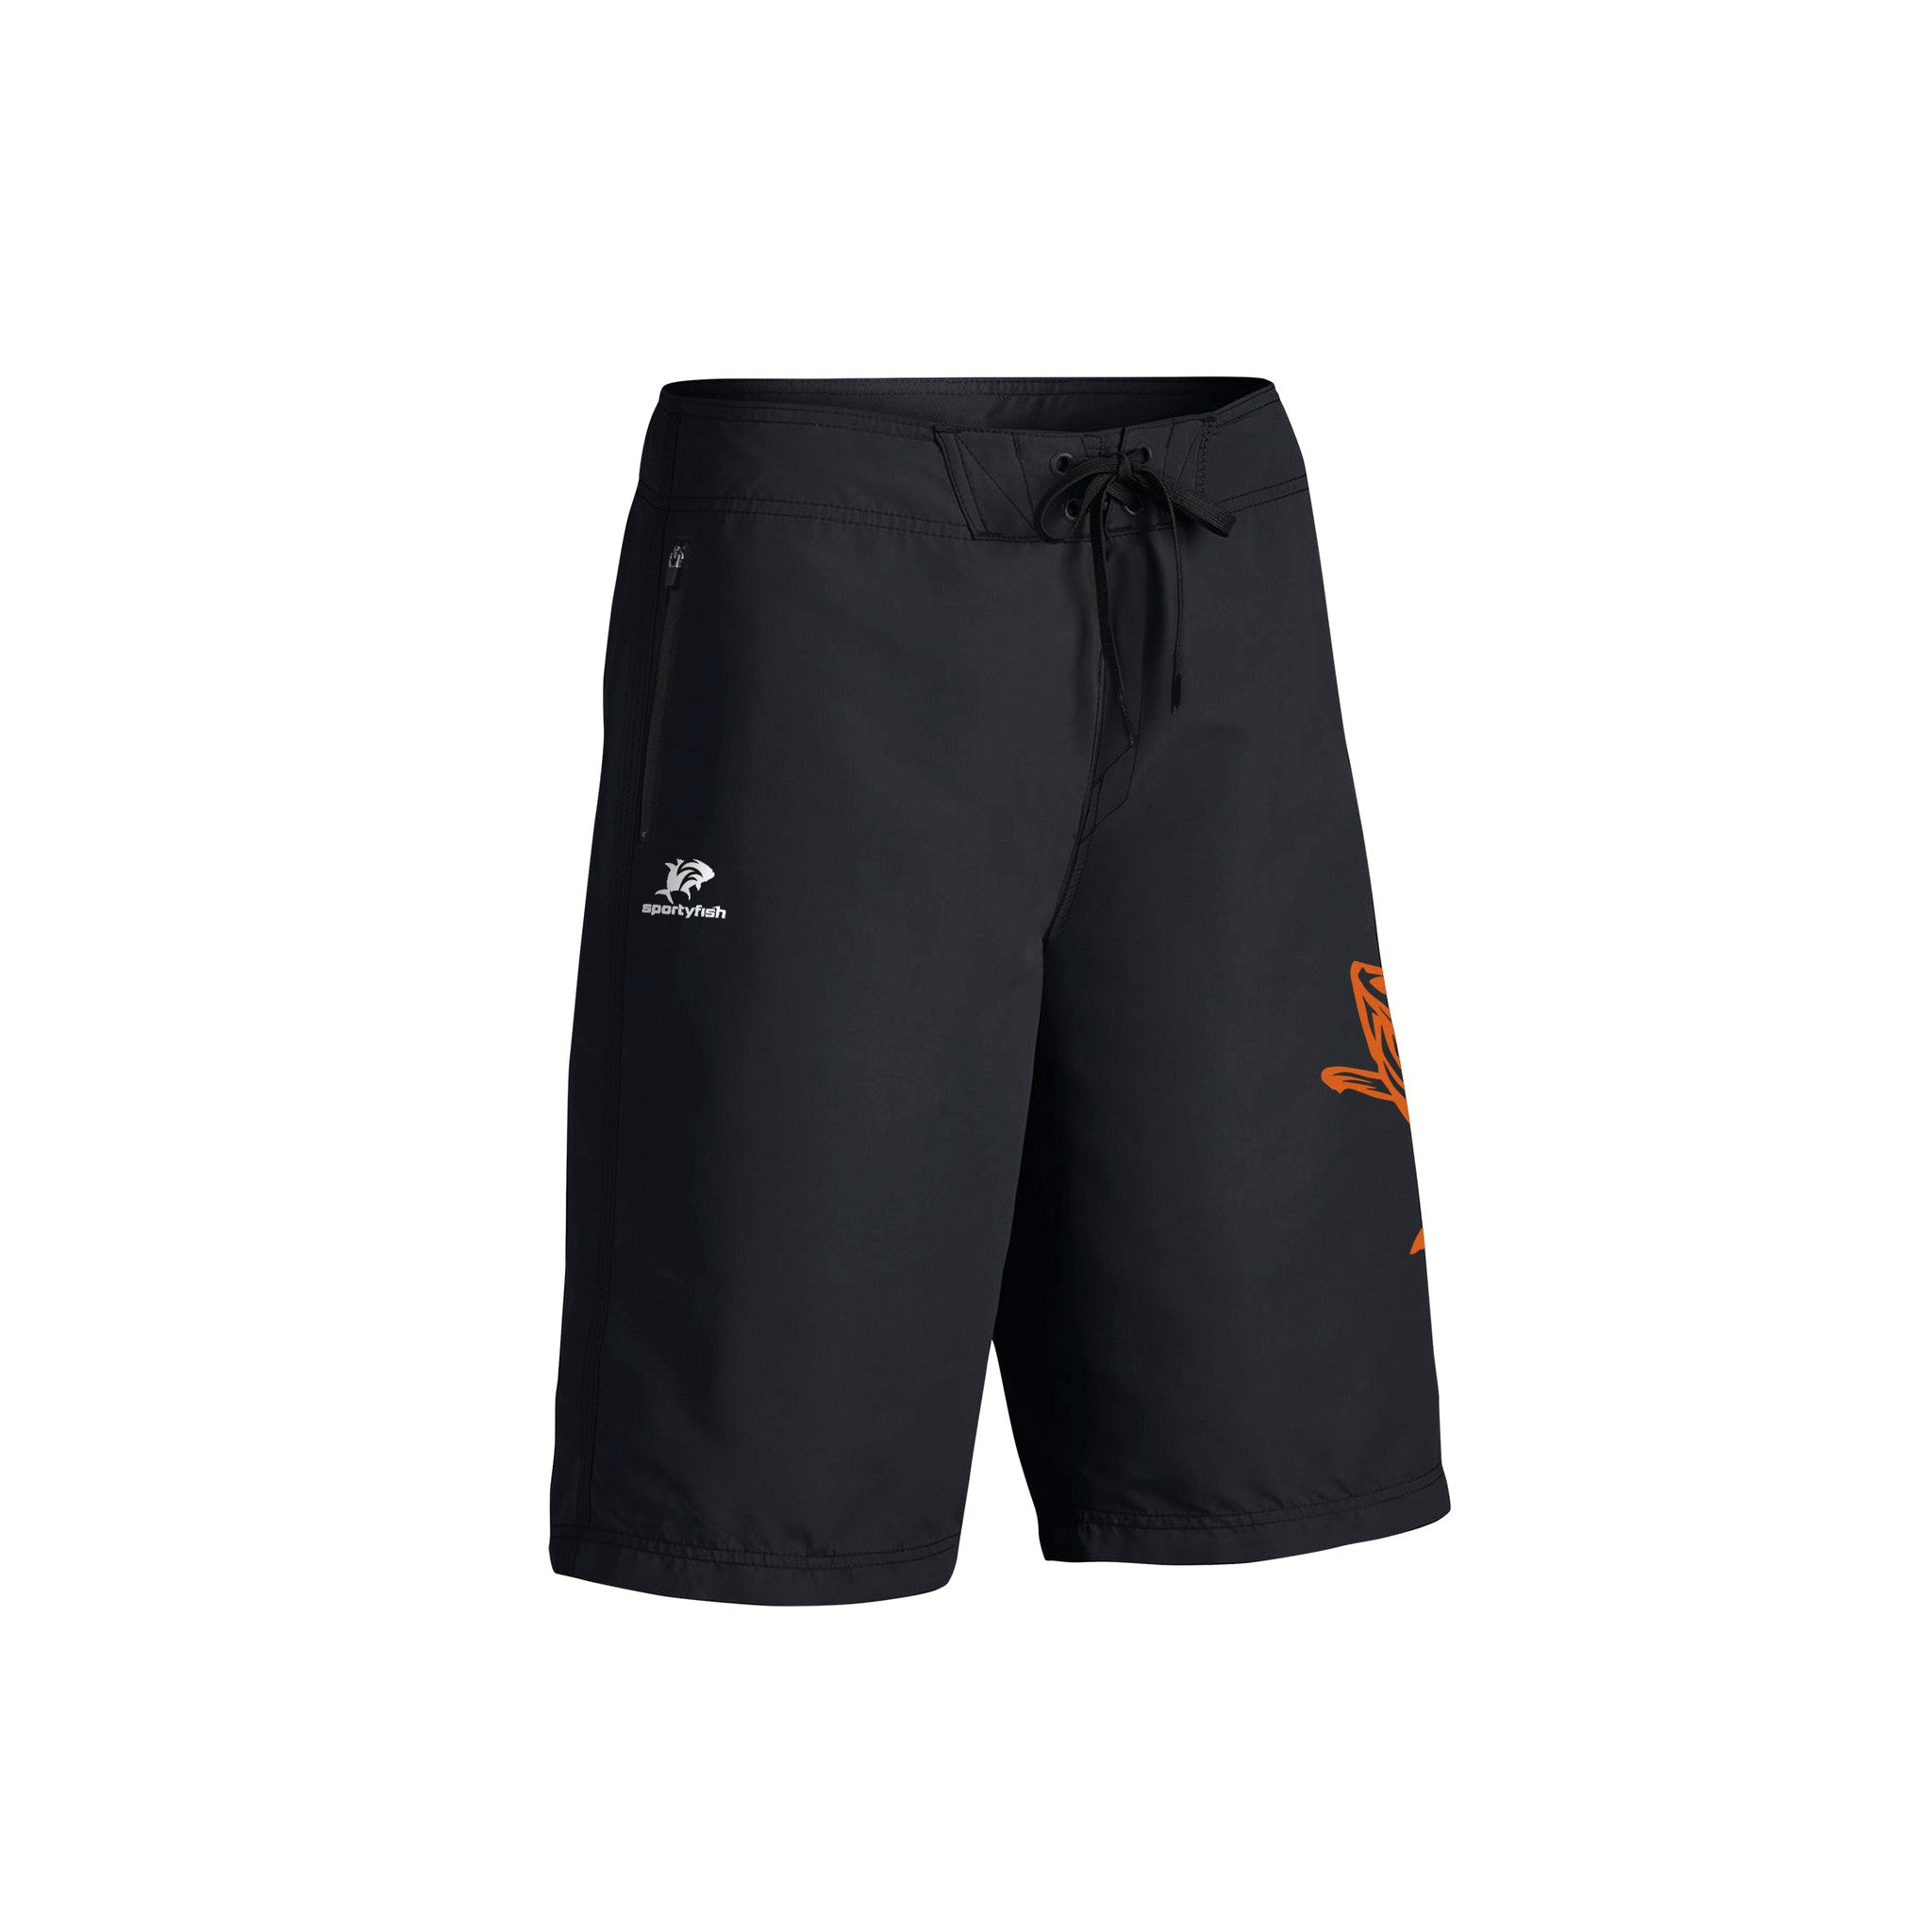 SportyFish Fury Series Board Shorts: Yellowfin Tuna front view2